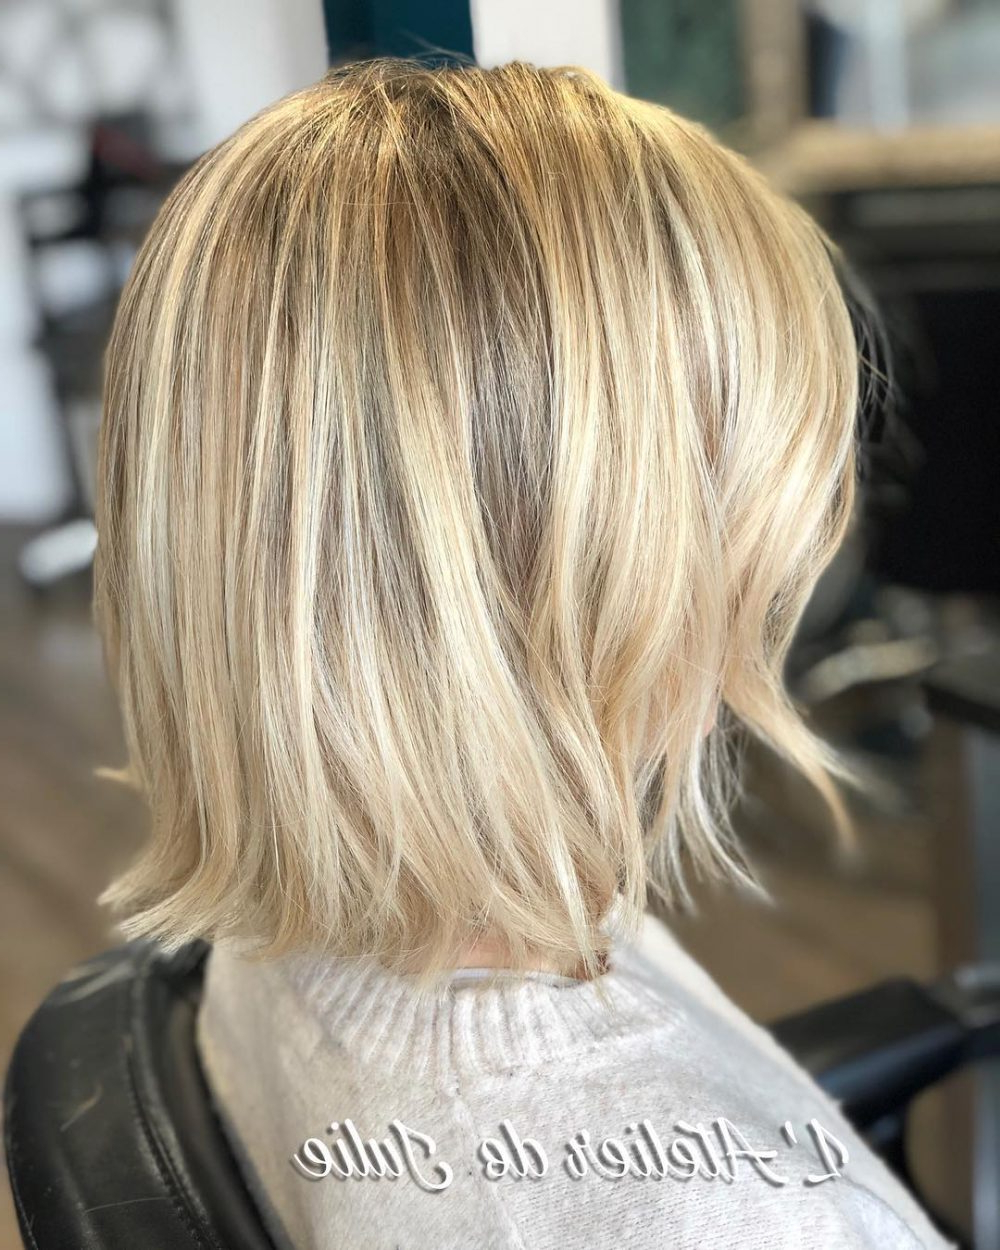 34 Perfect Short Haircuts And Hairstyles For Thin Hair (2018) Throughout Short Haircuts For Blondes With Thin Hair (View 9 of 25)